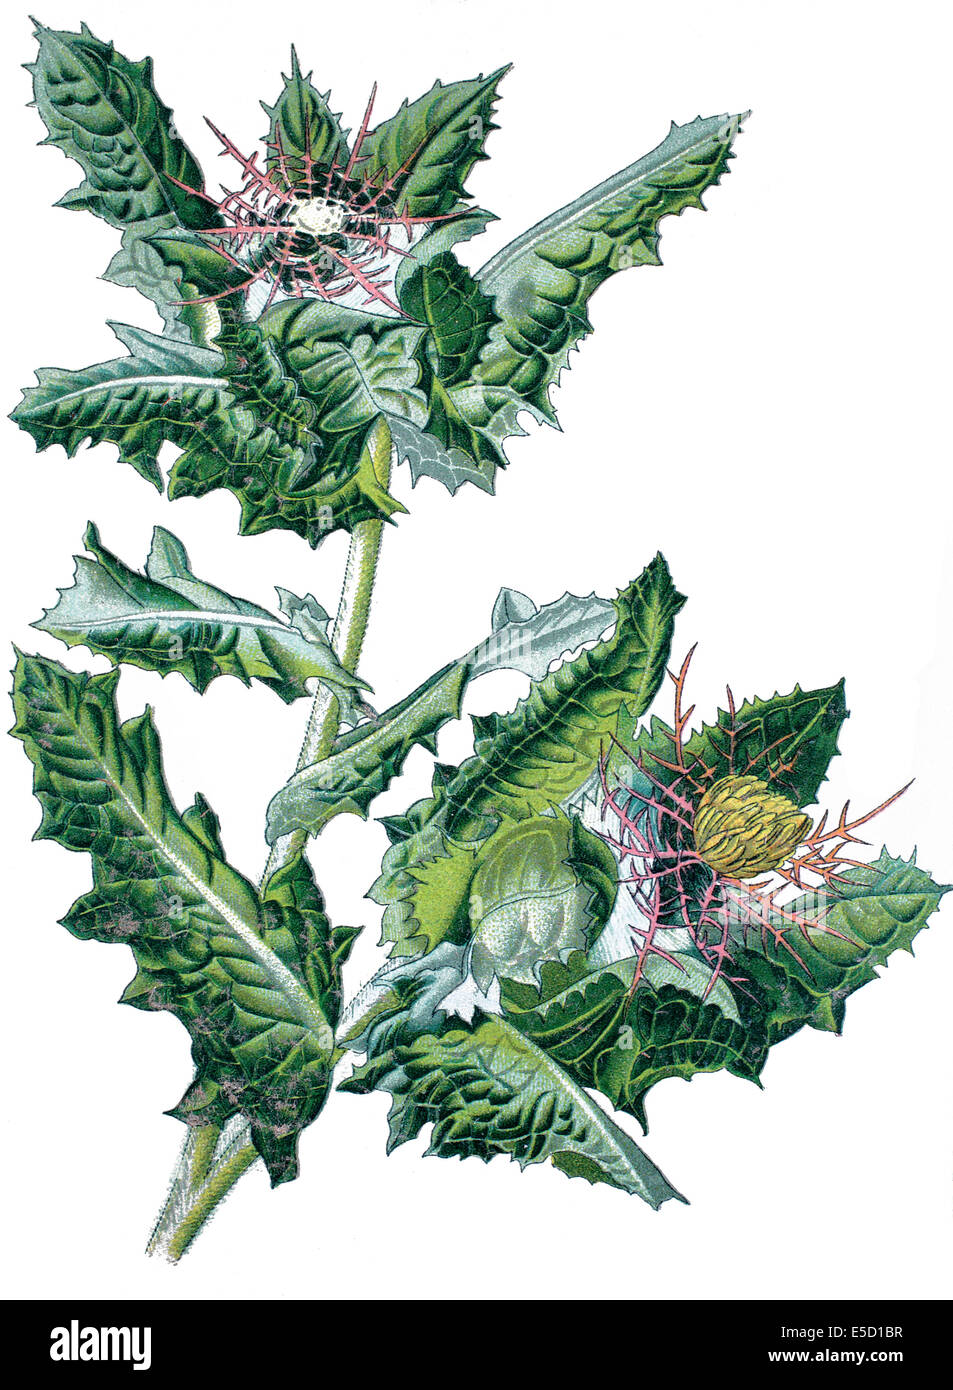 St. Benedict's thistle, blessed thistle, holy thistle or spotted thistle, Cnicus benedictus - Stock Image